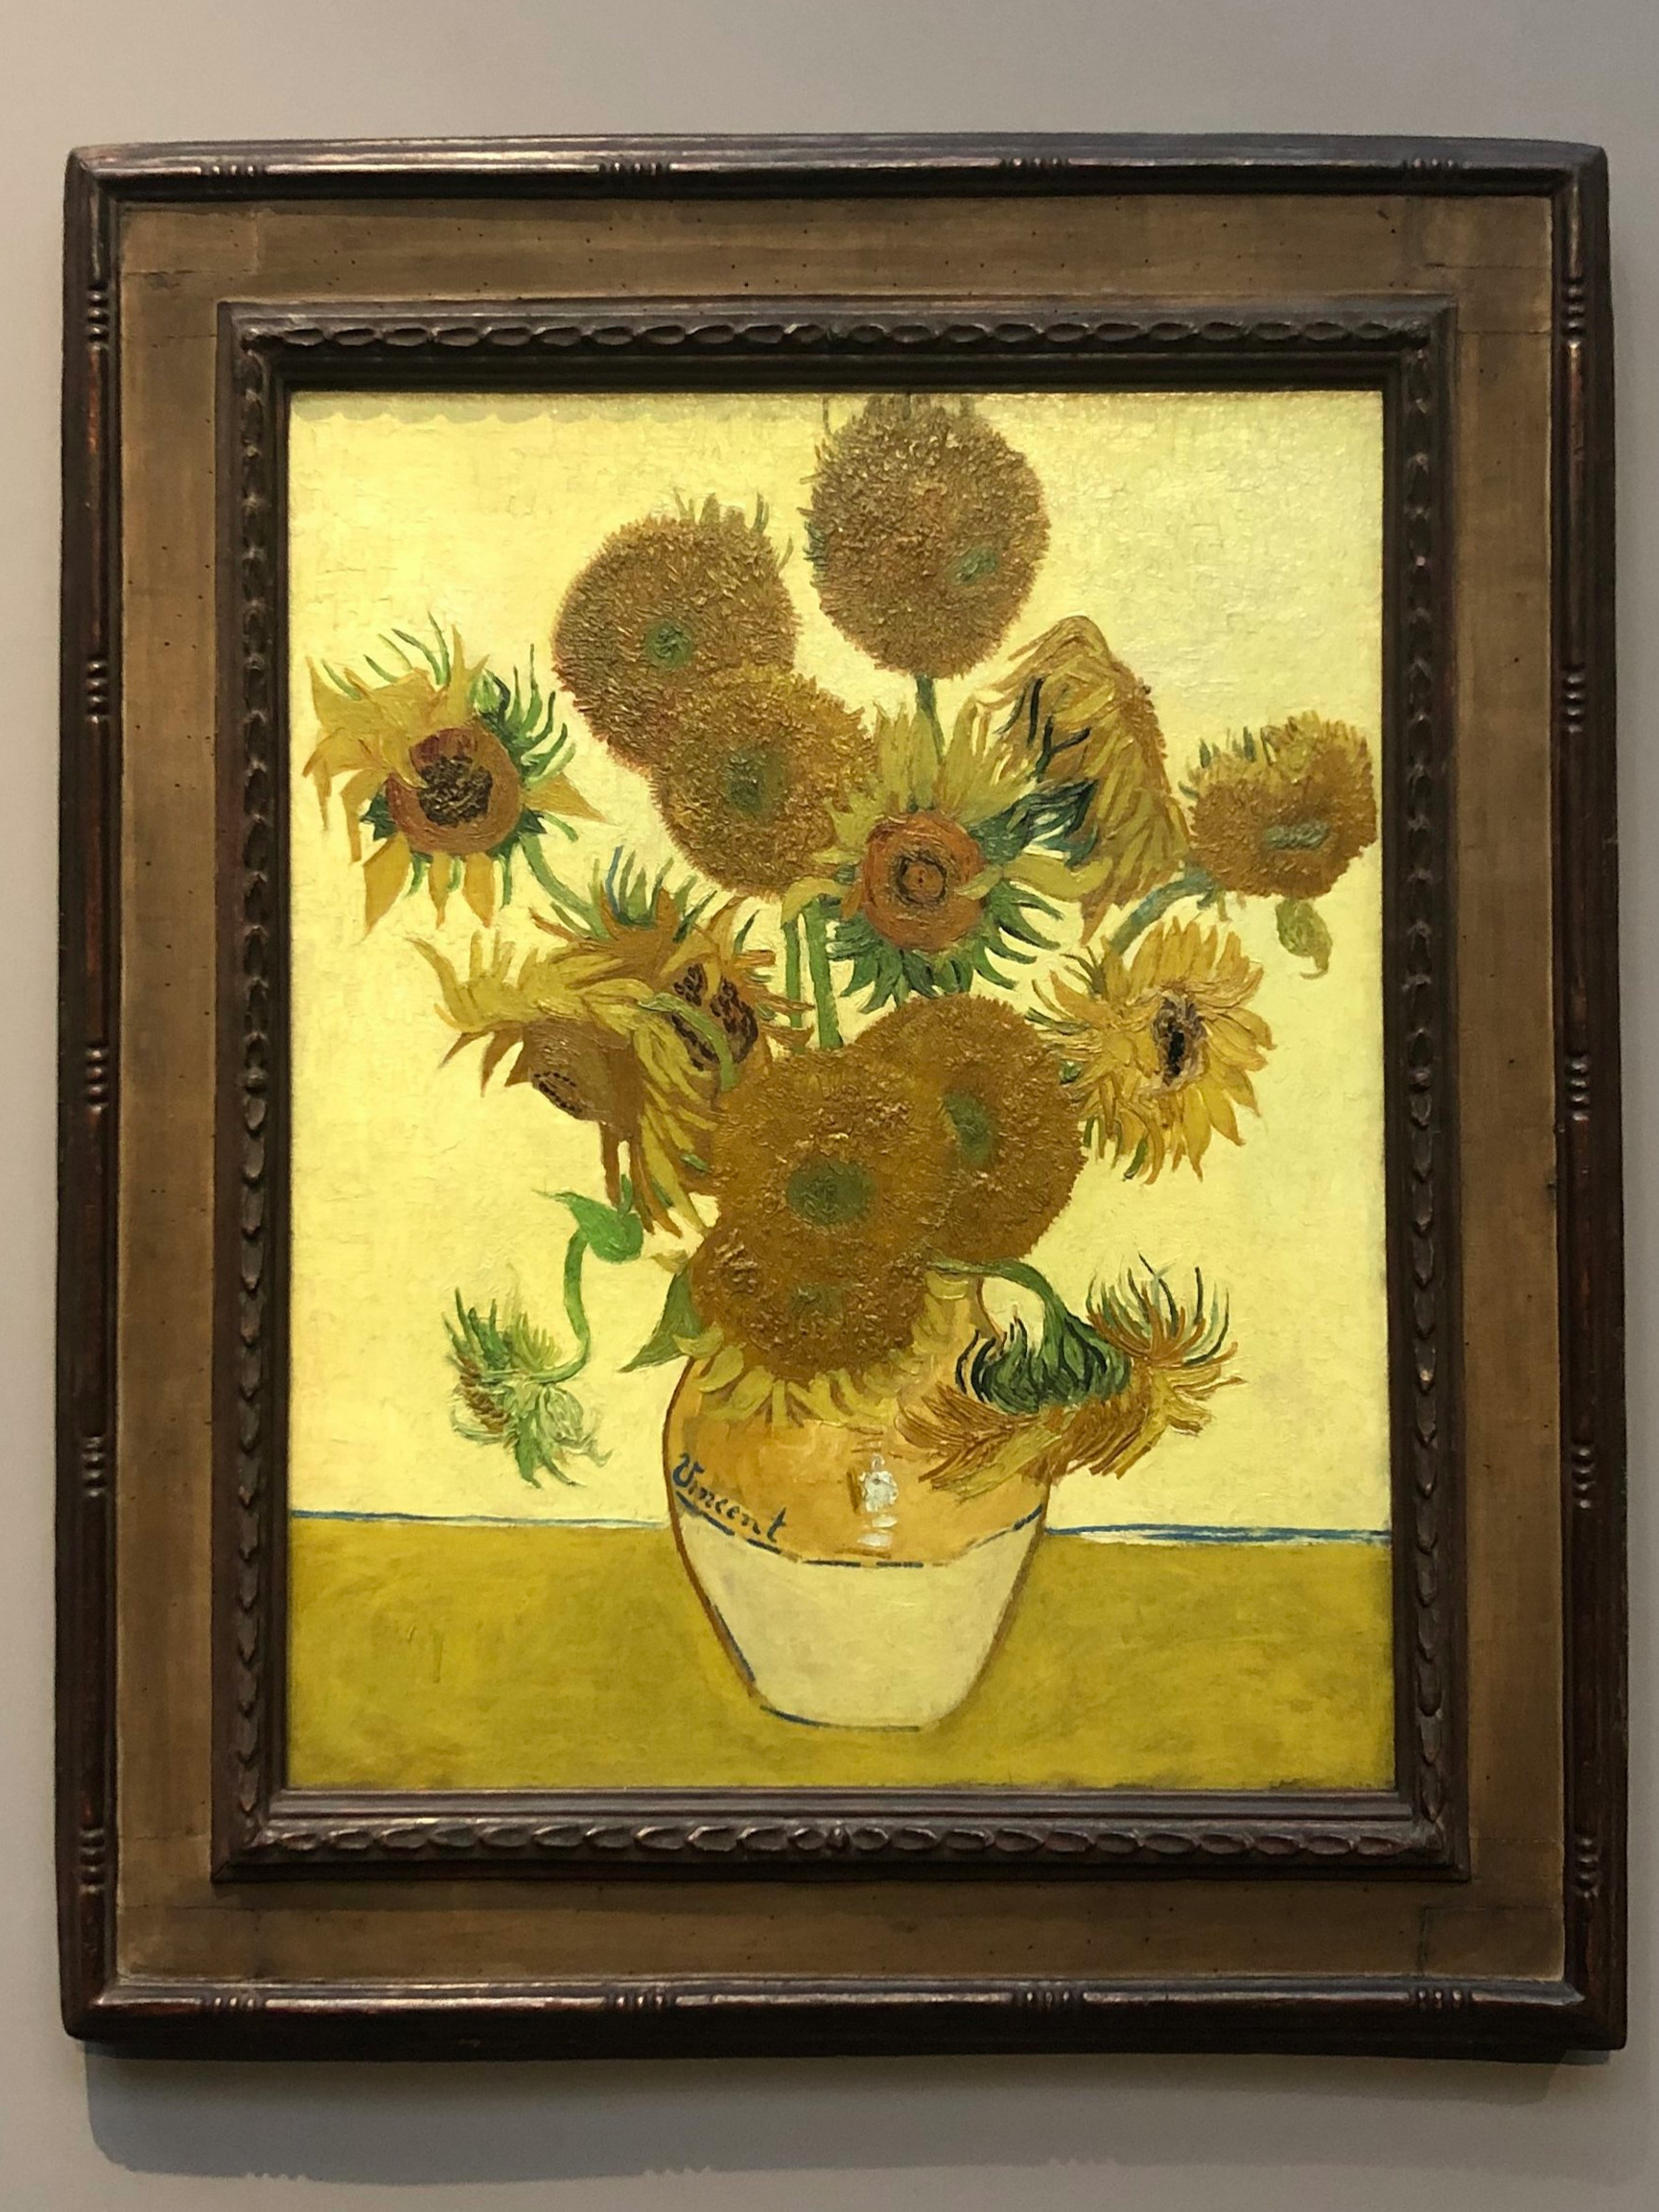 Van Gogh Sunflower Painting at the National Gallery